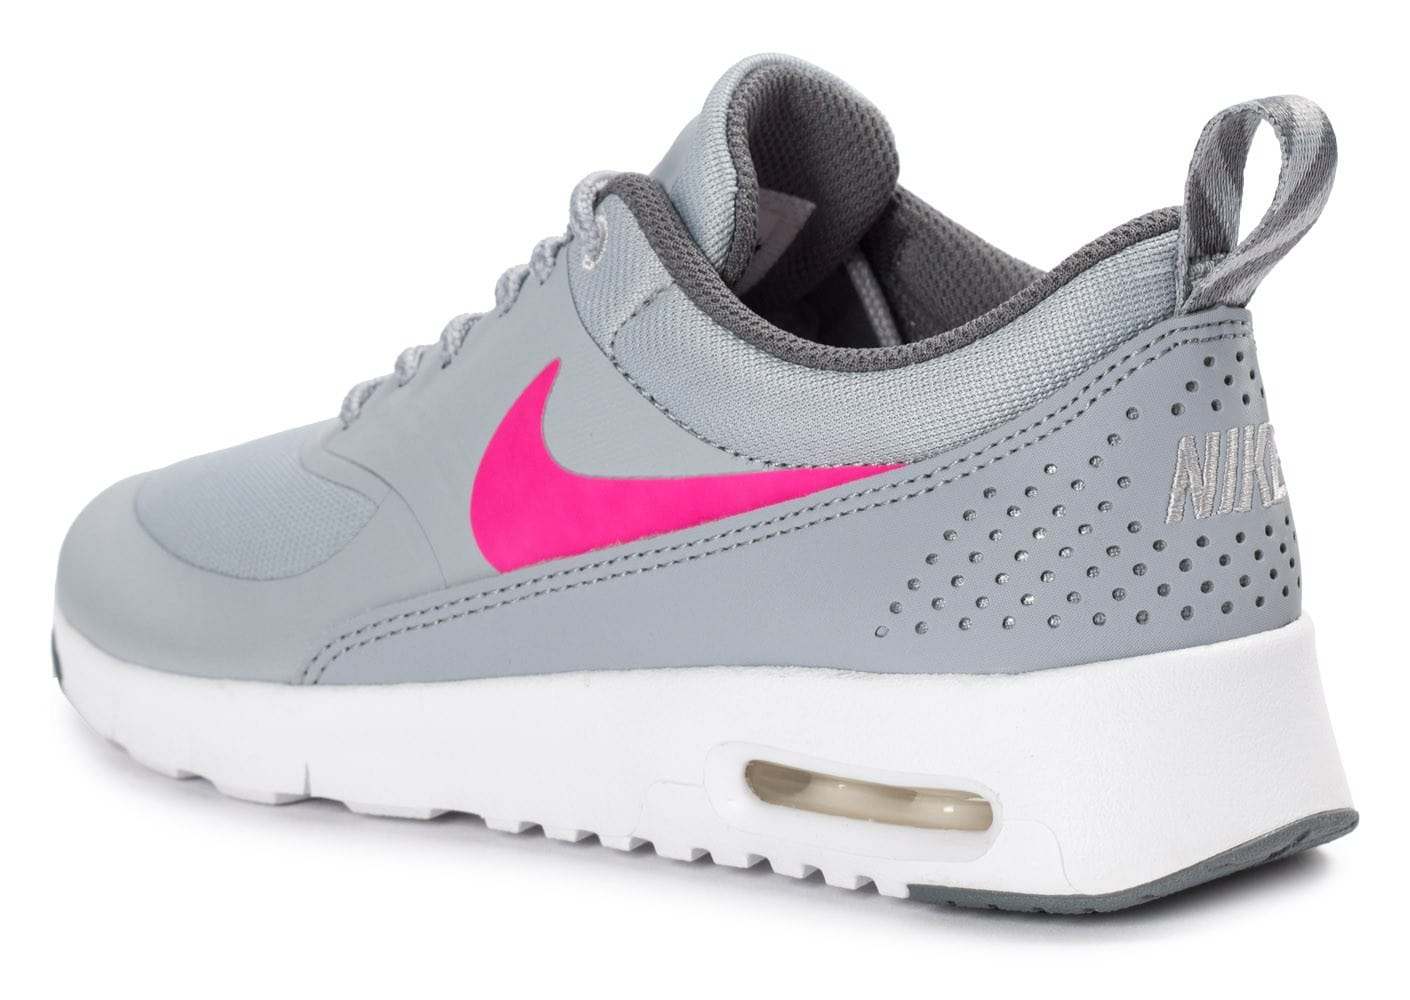 brand new 7048a 0708e ... Chaussures Nike Air Max Thea Junior grise et rose vue arrière ...